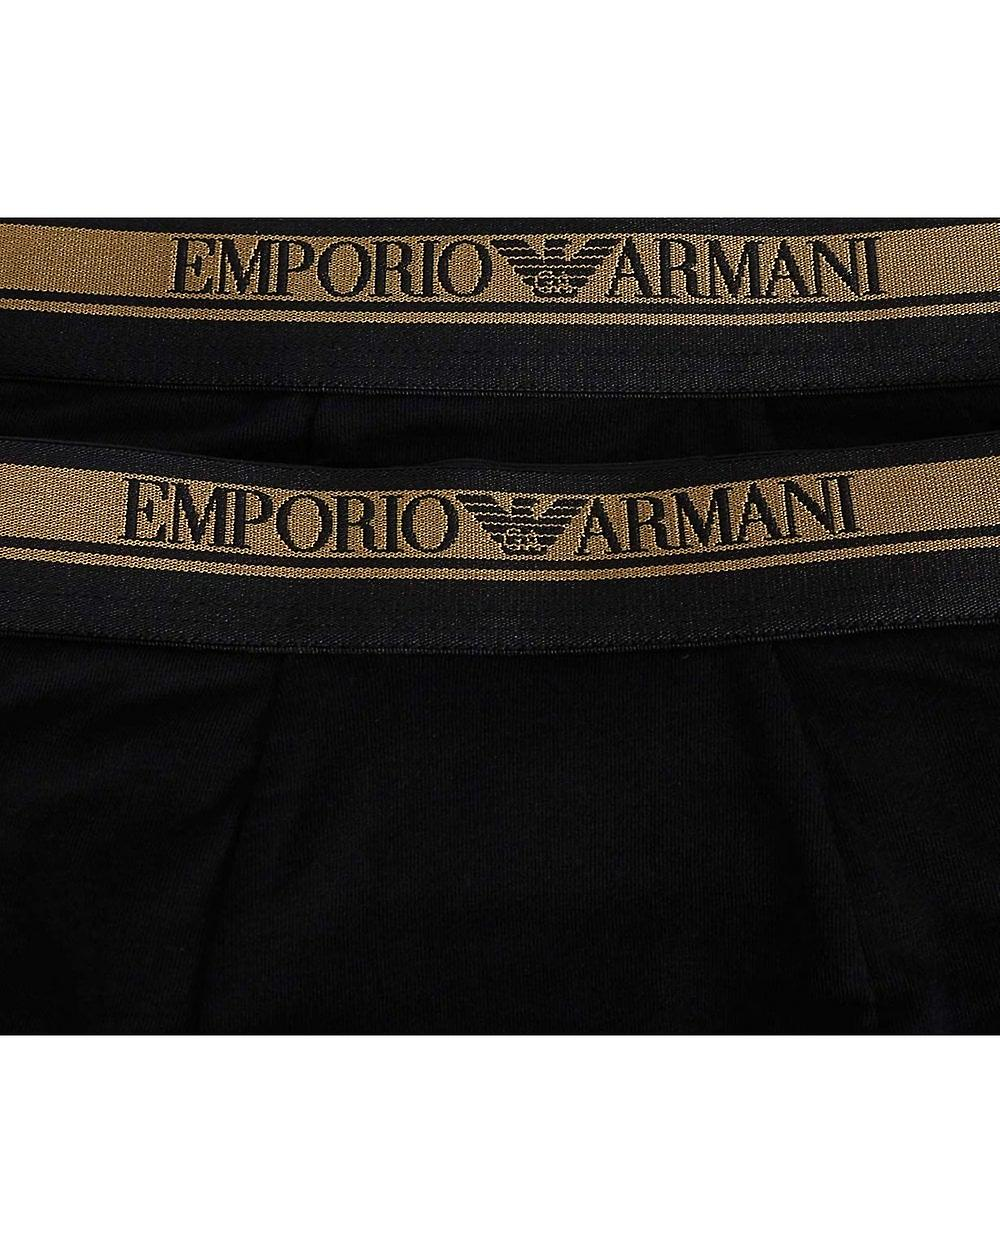 Emporio Armani 2 Pack Gold Waist Band Trunks